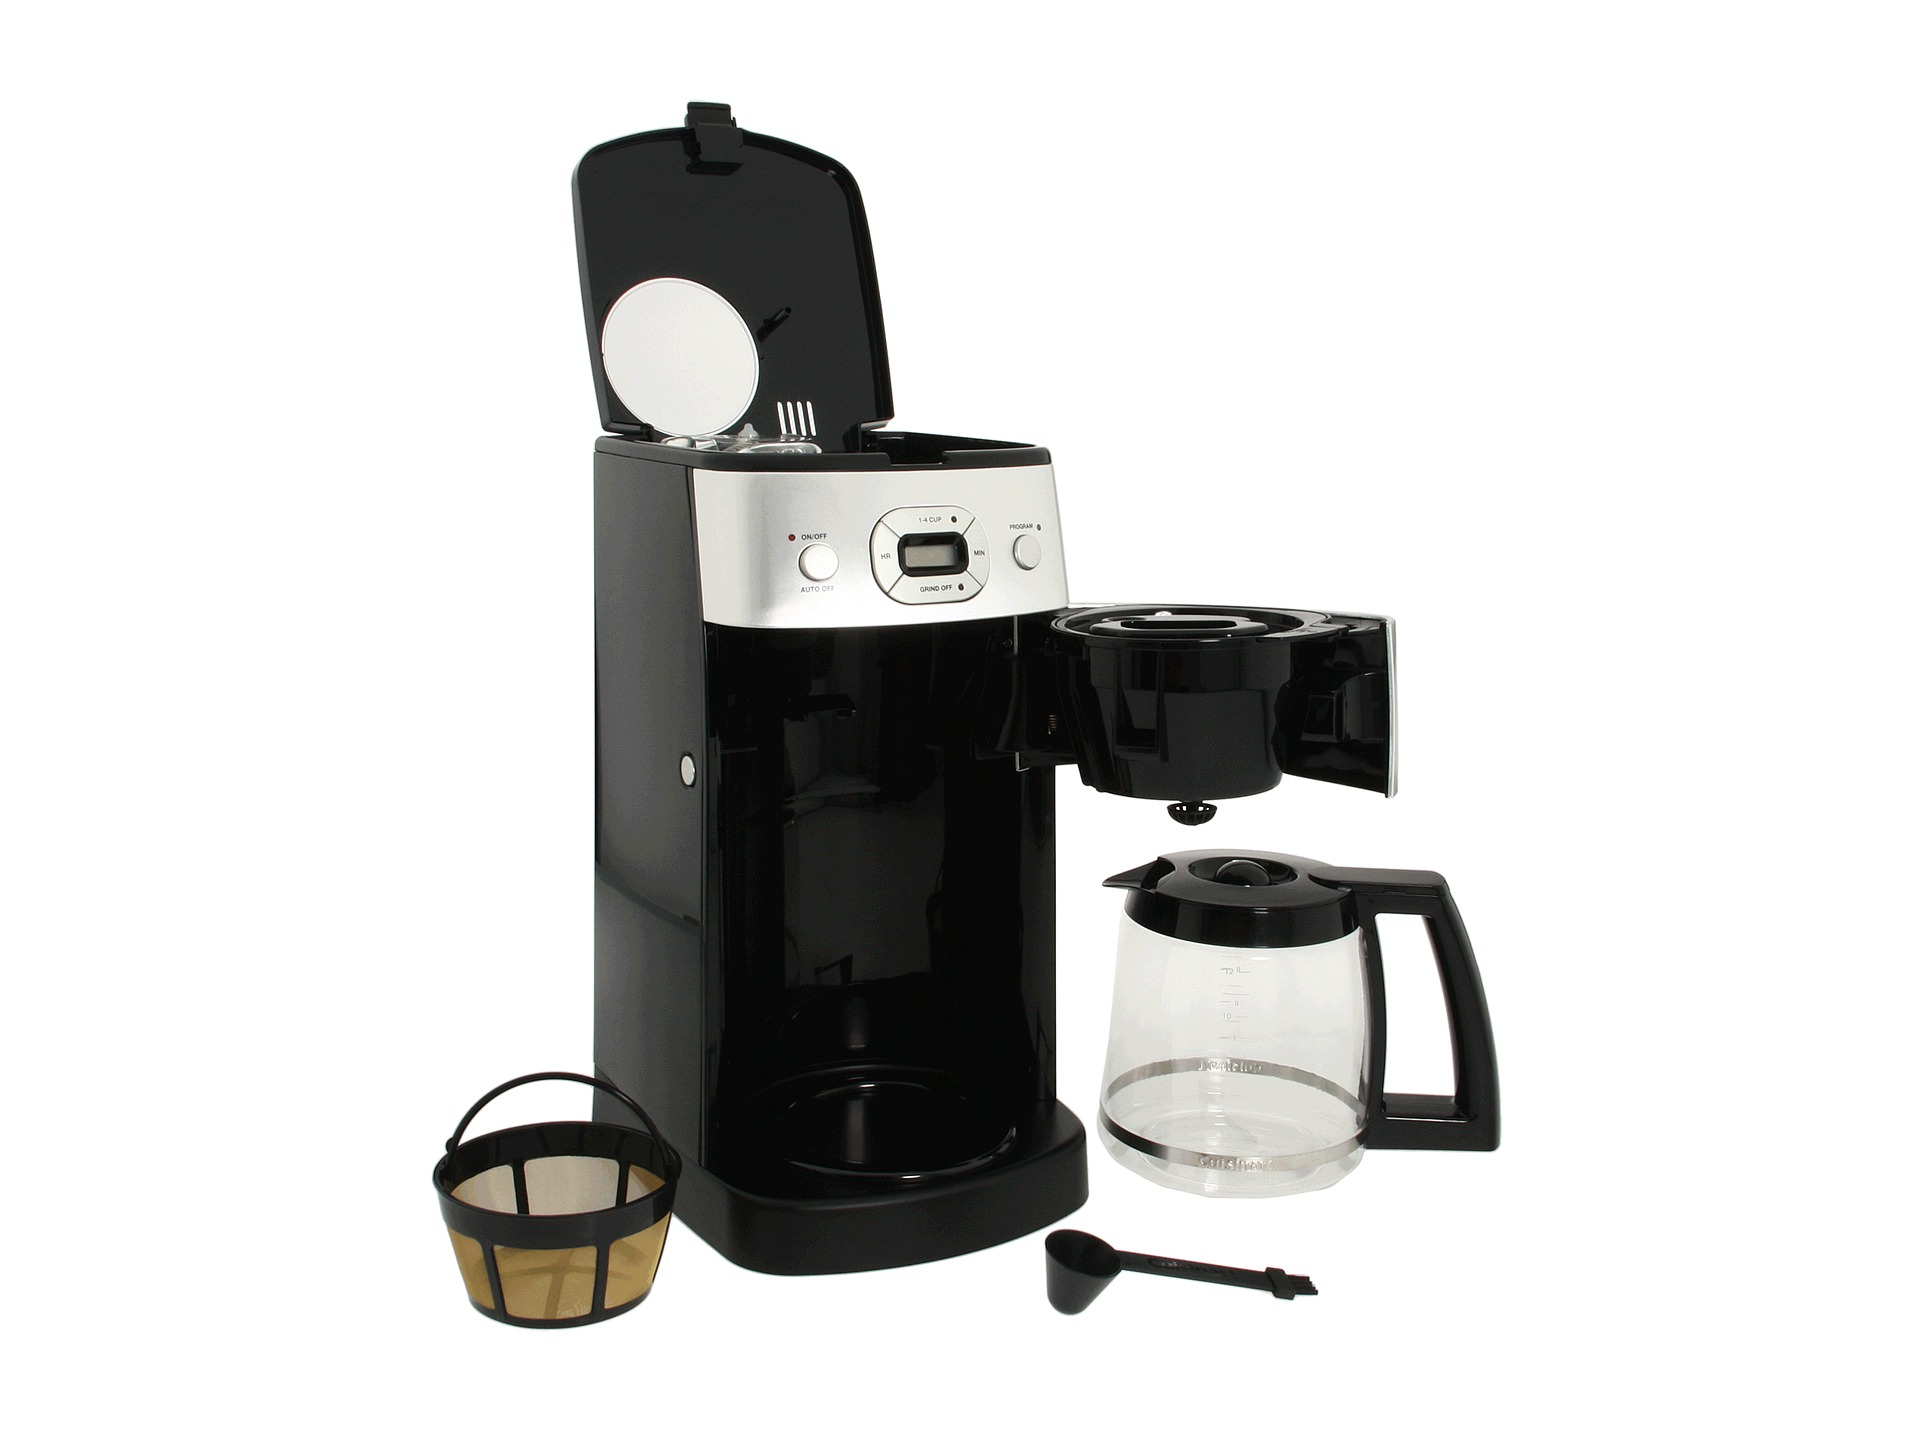 Cuisinart Dgb 625bc Grind & Brew Coffee Maker : Cuisinart DGB-625BC Grind & Brew 12-Cup Coffee maker - Zappos.com Free Shipping BOTH Ways